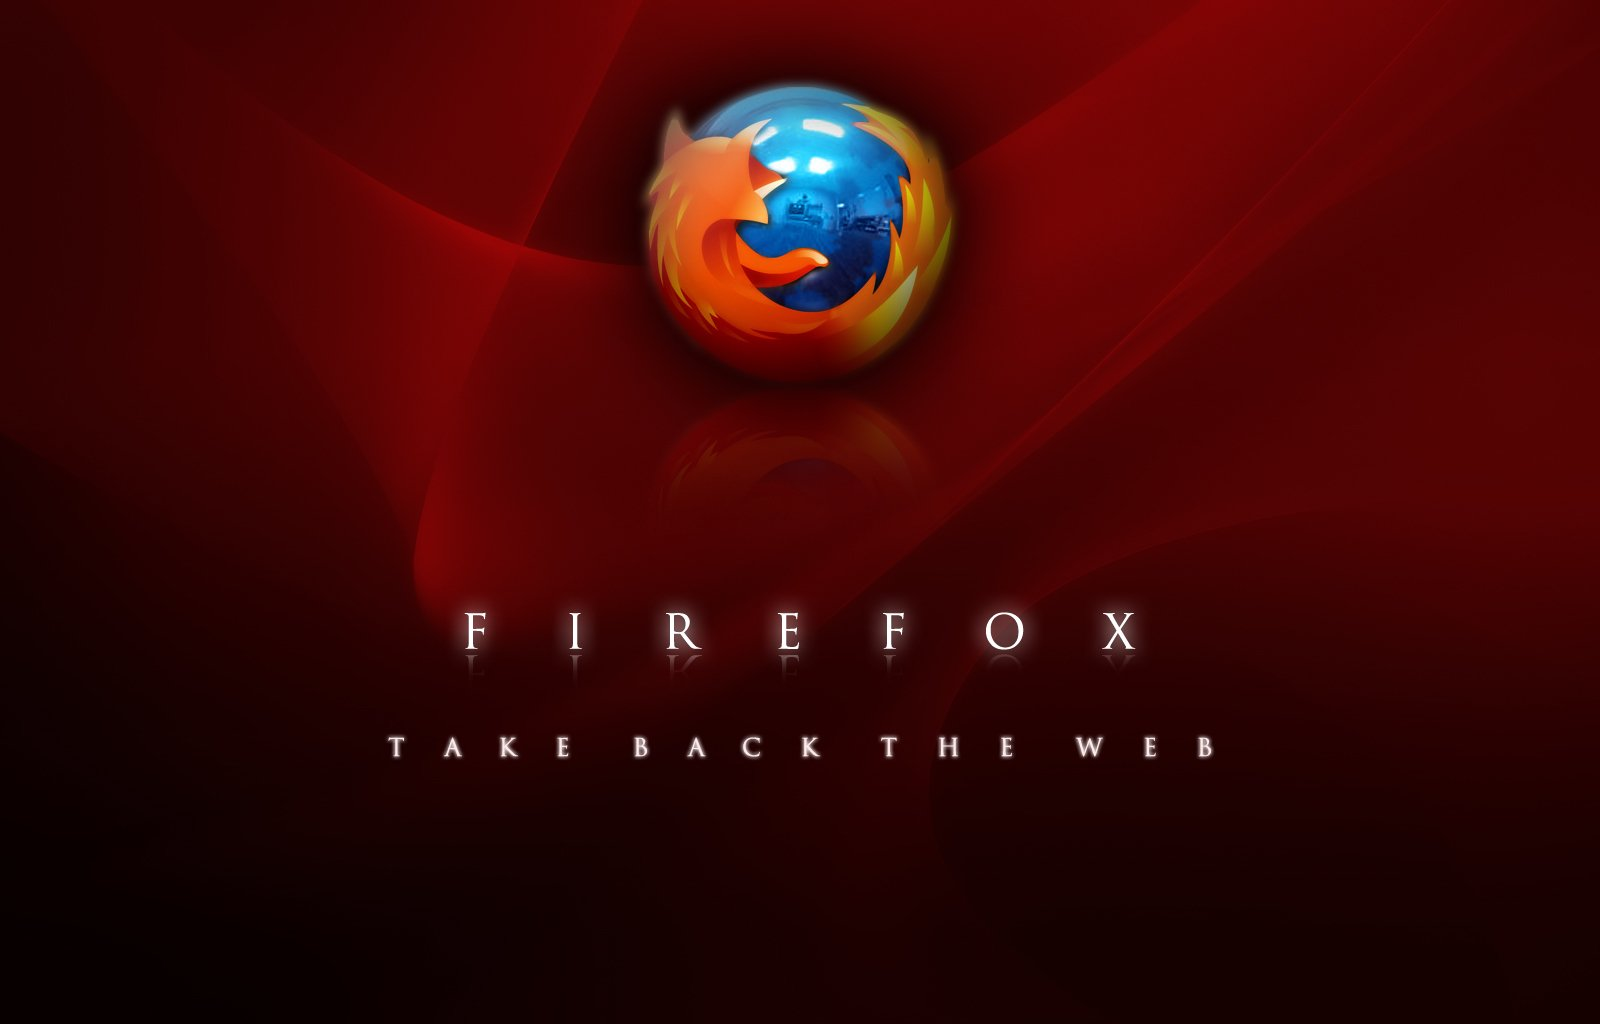 Firefox wallpaper and background image 1600x1024 id - Wallpaper 1600x1024 ...